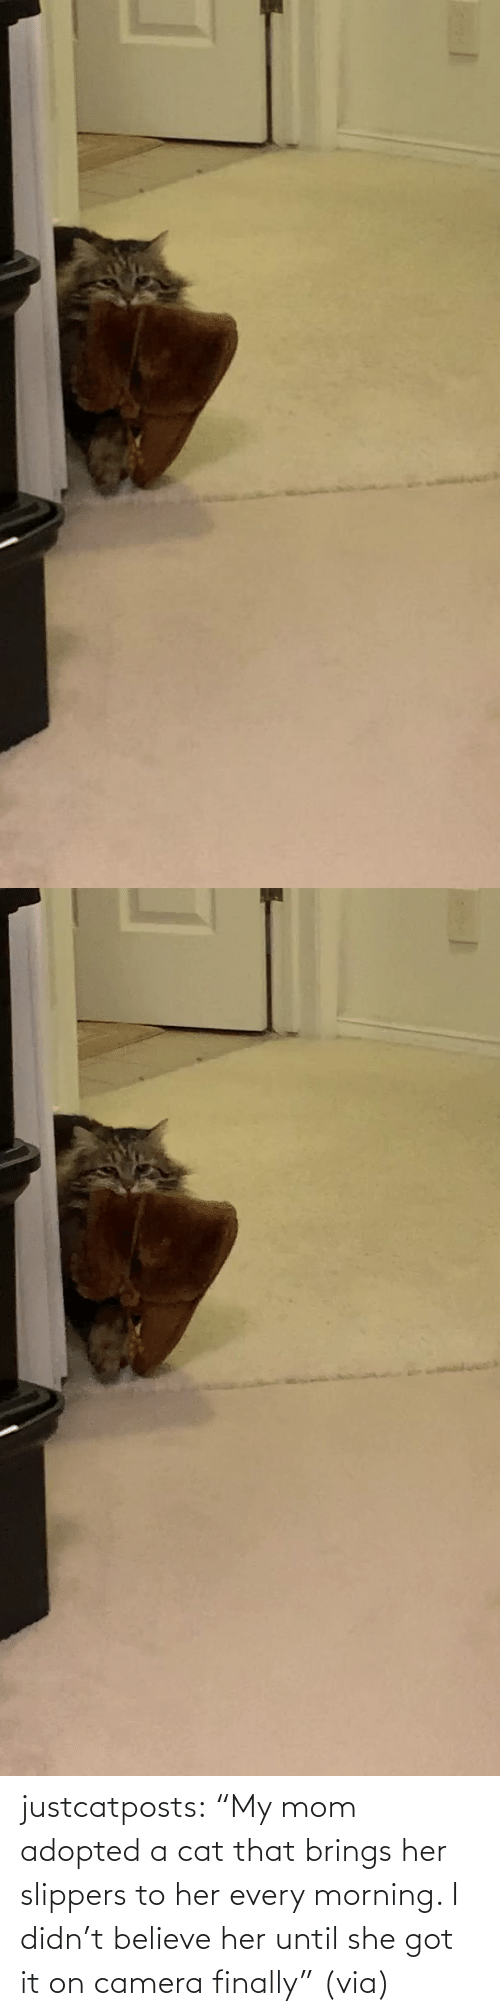 "a cat: justcatposts:  ""My mom adopted a cat that brings her slippers to her every morning. I didn't believe her until she got it on camera finally"" (via)"